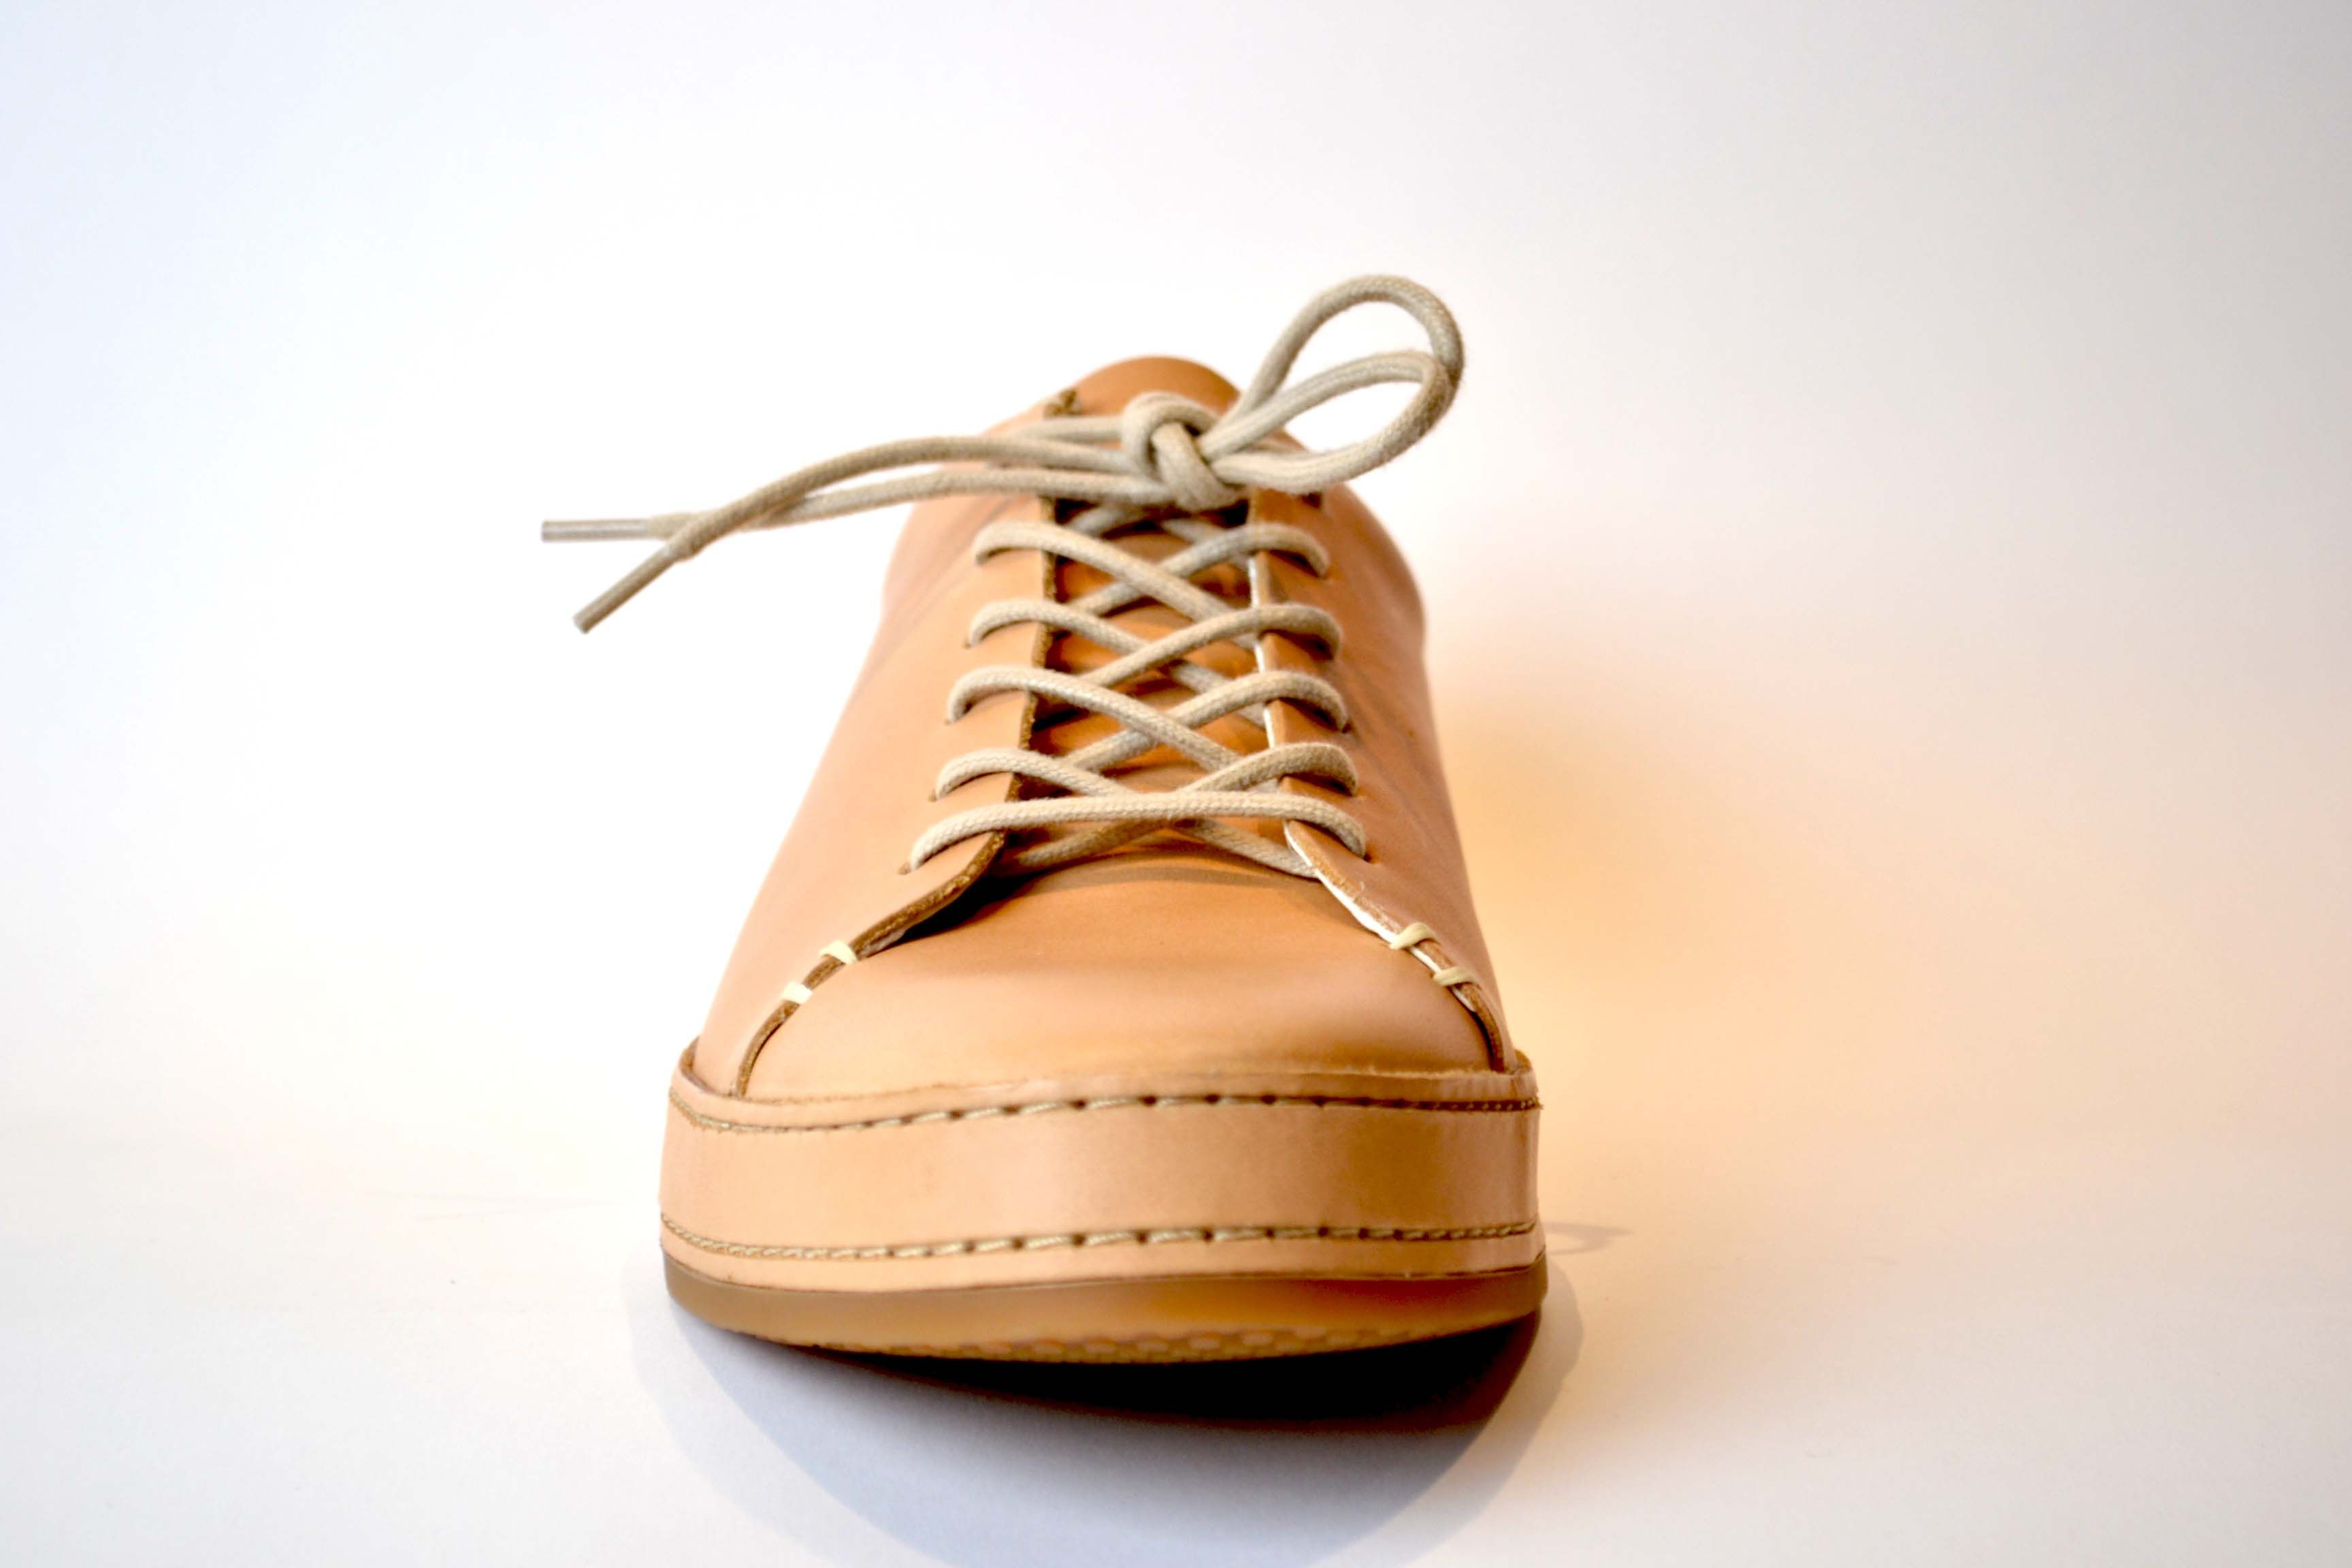 76136dd29b779c Butts and Shoulders Leather Sneakers